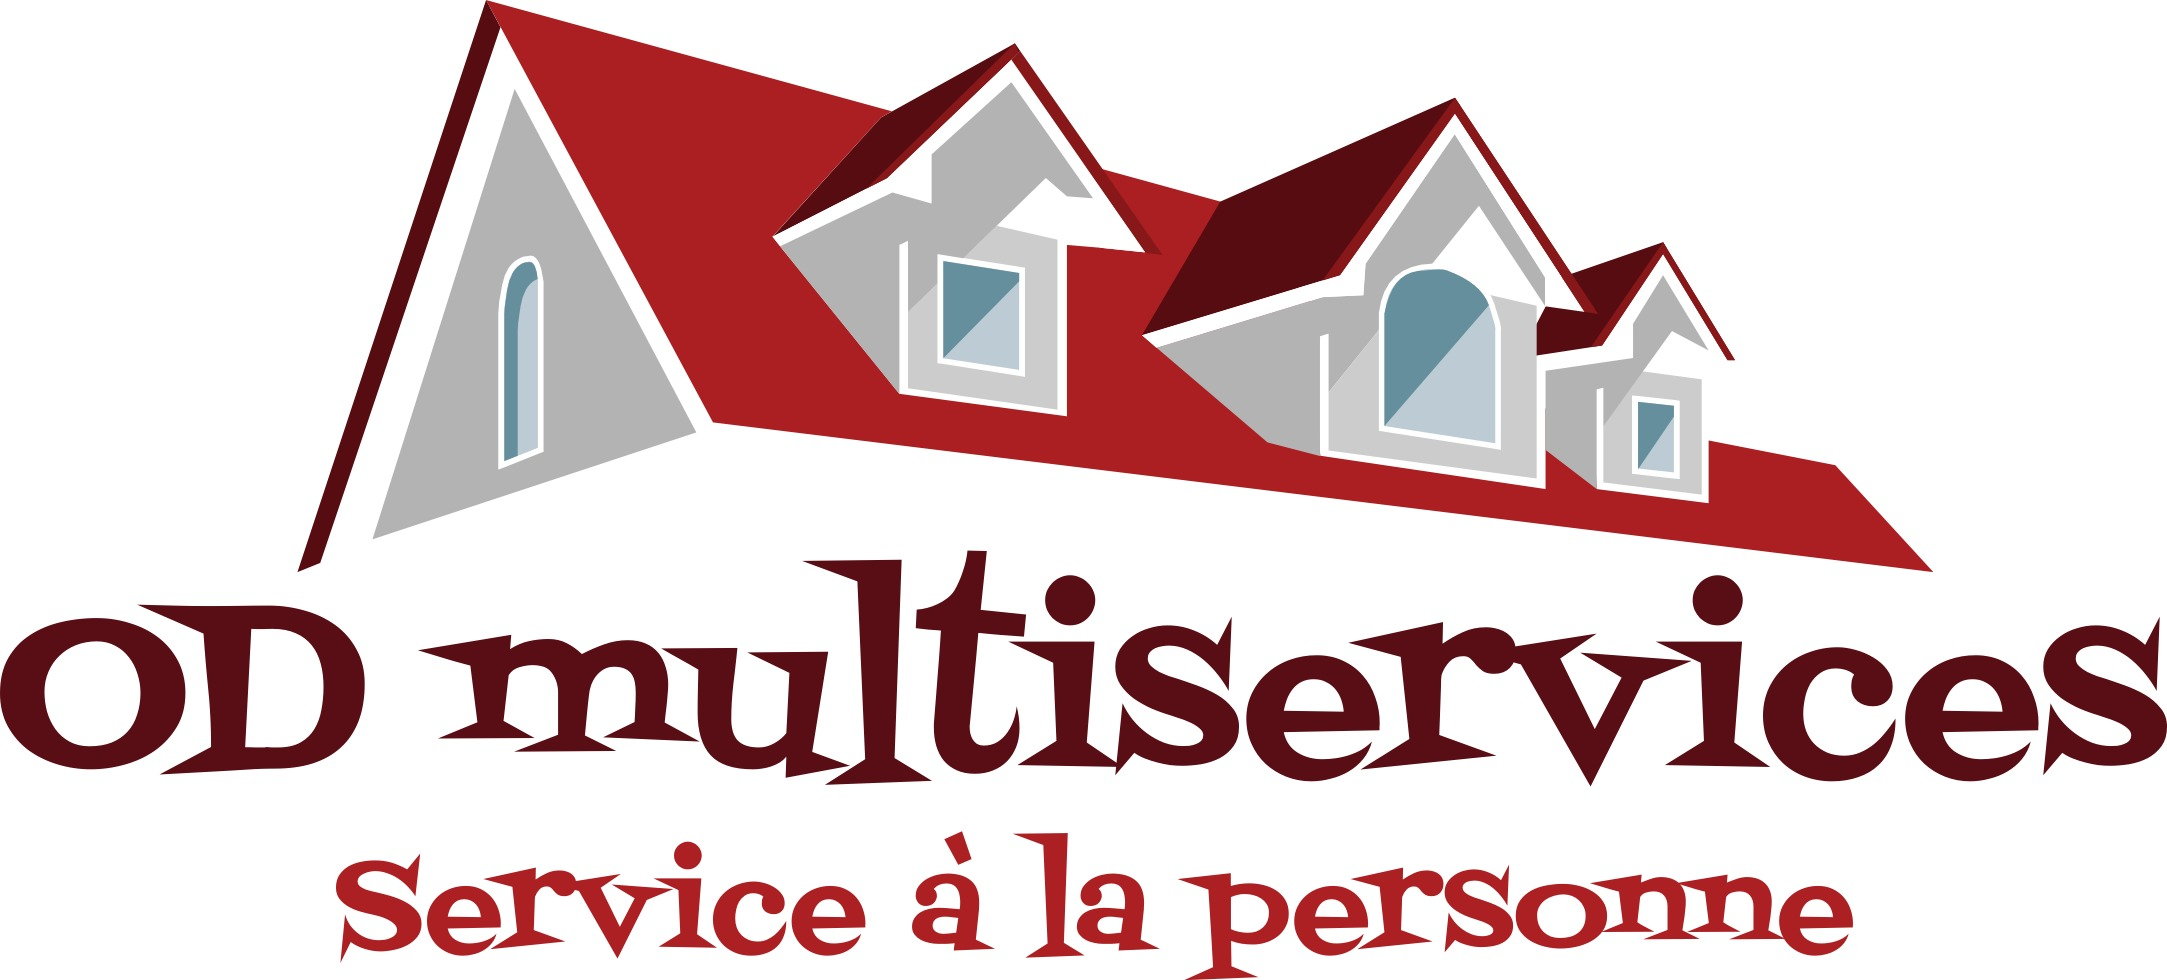 od multiservices